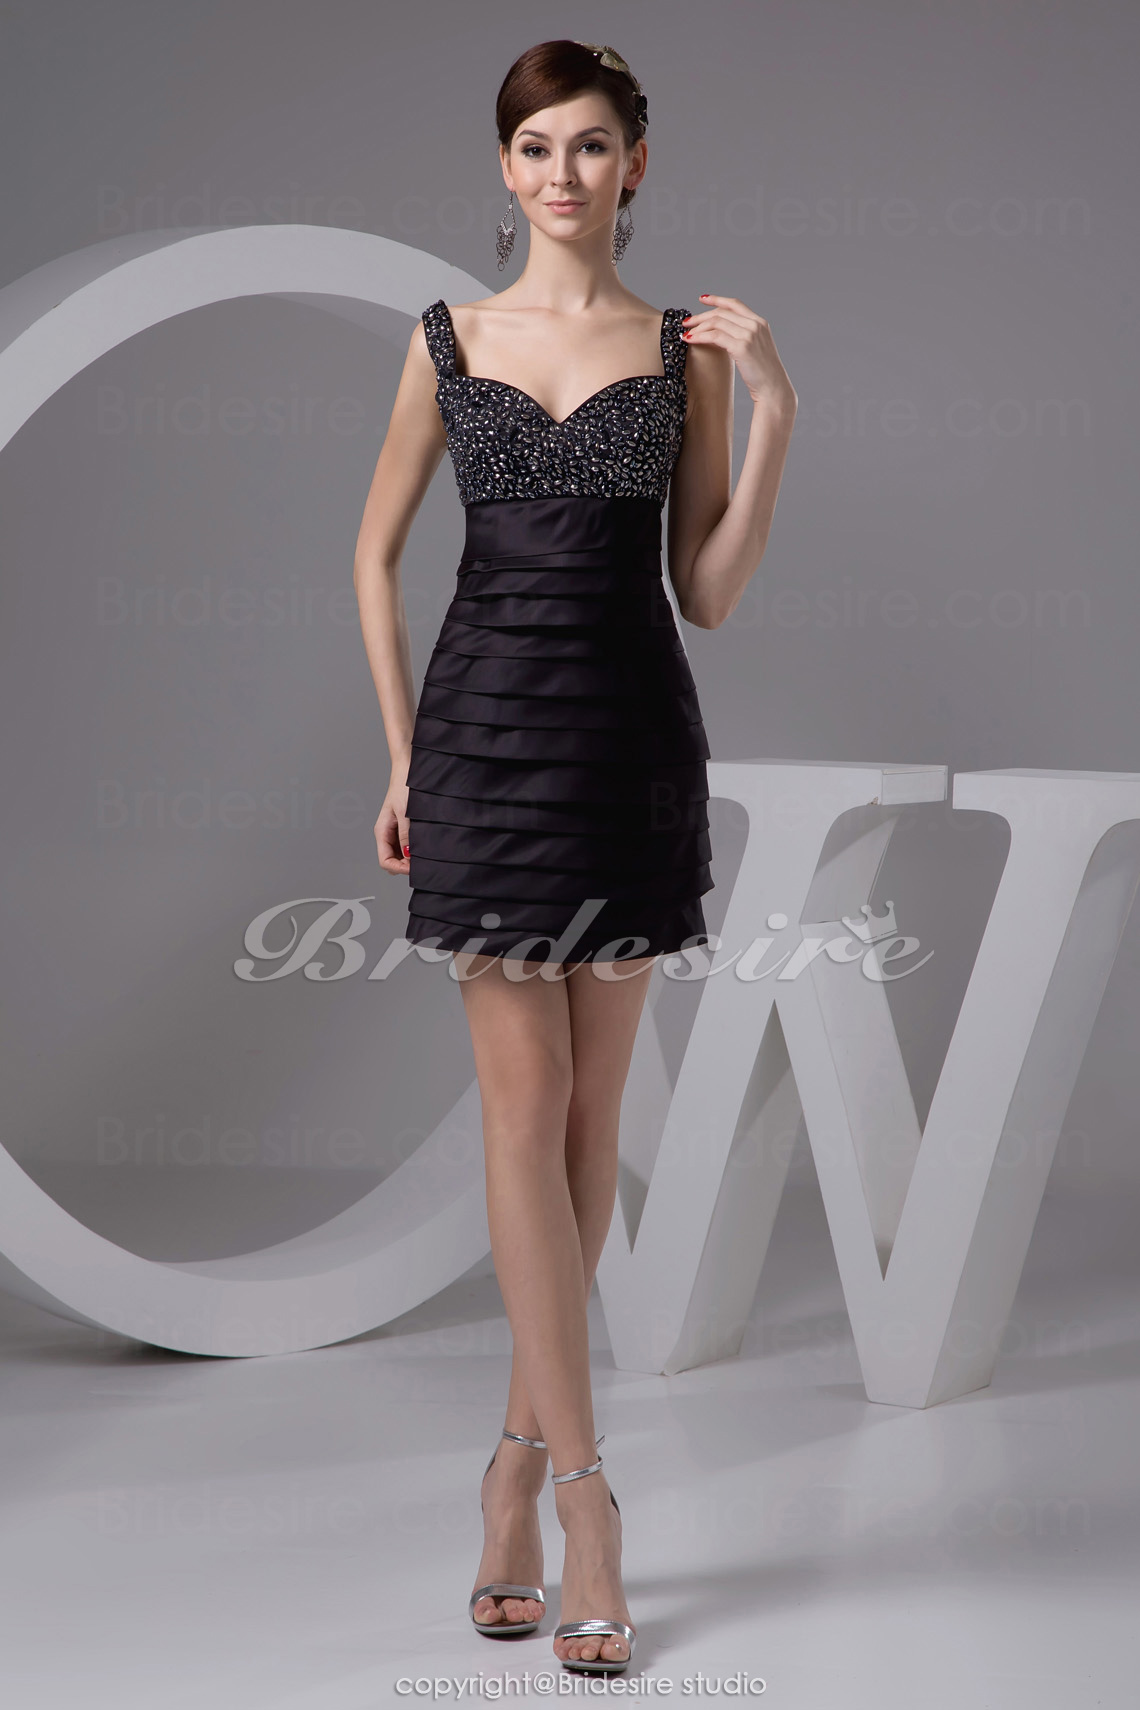 Sheath/Column Sweetheart Straps Short/Mini Sleeveless Satin Dress